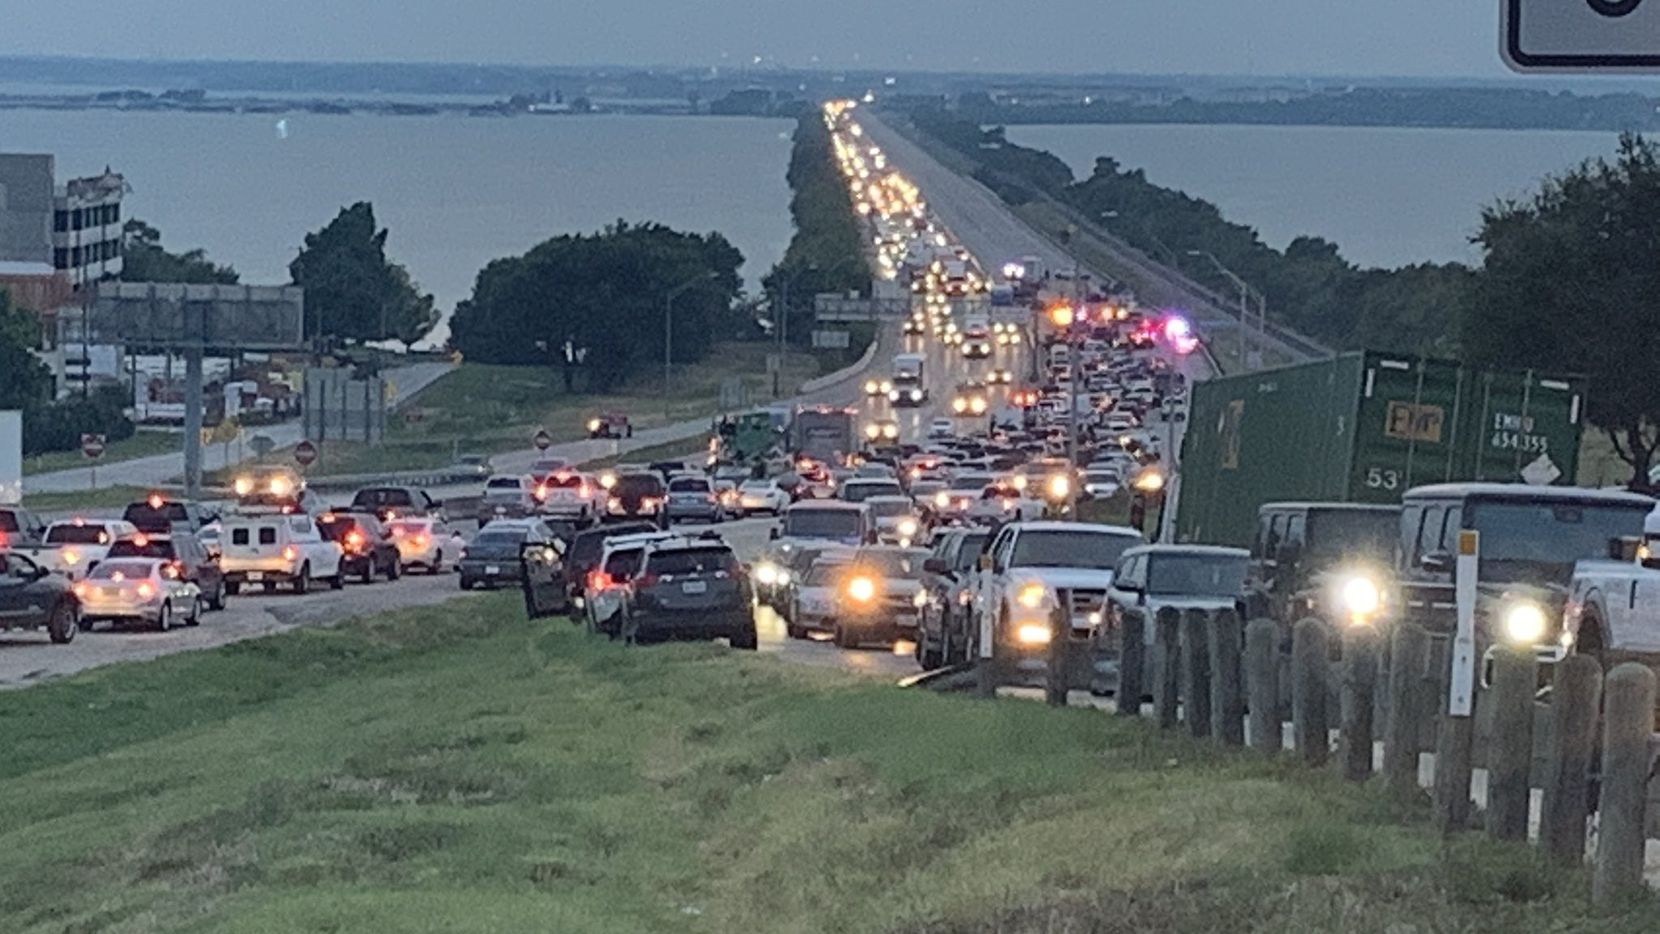 Rockwall police said the multi-vehicle accident Monday evening on Interstate 30 resulted in serious injury.